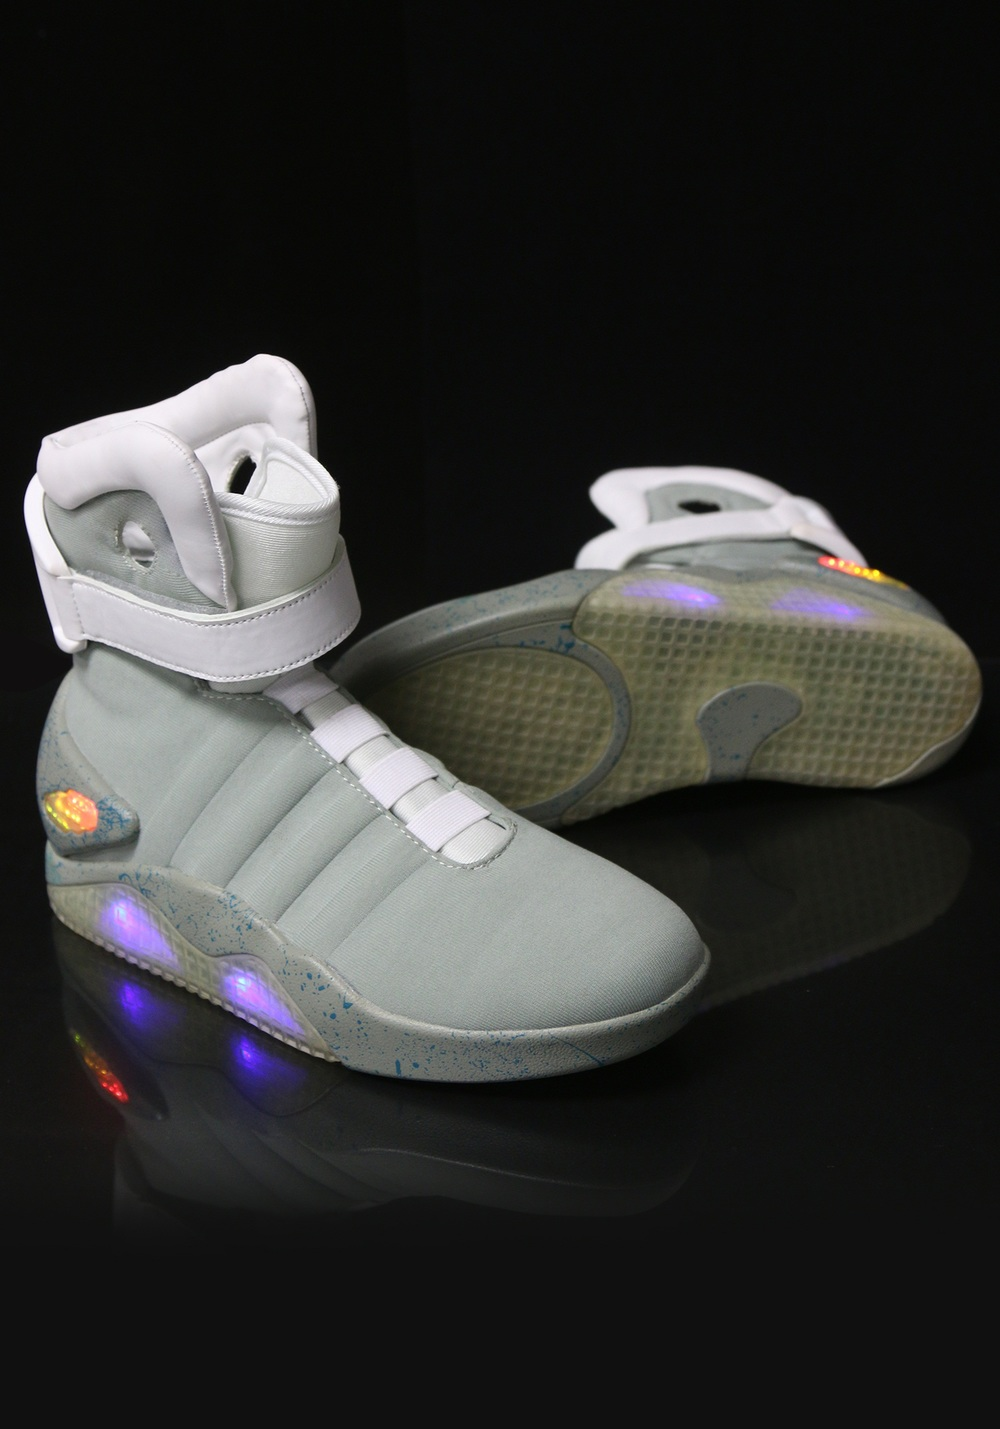 back-to-the-future-2-light-up-shoes-alt-2.jpg